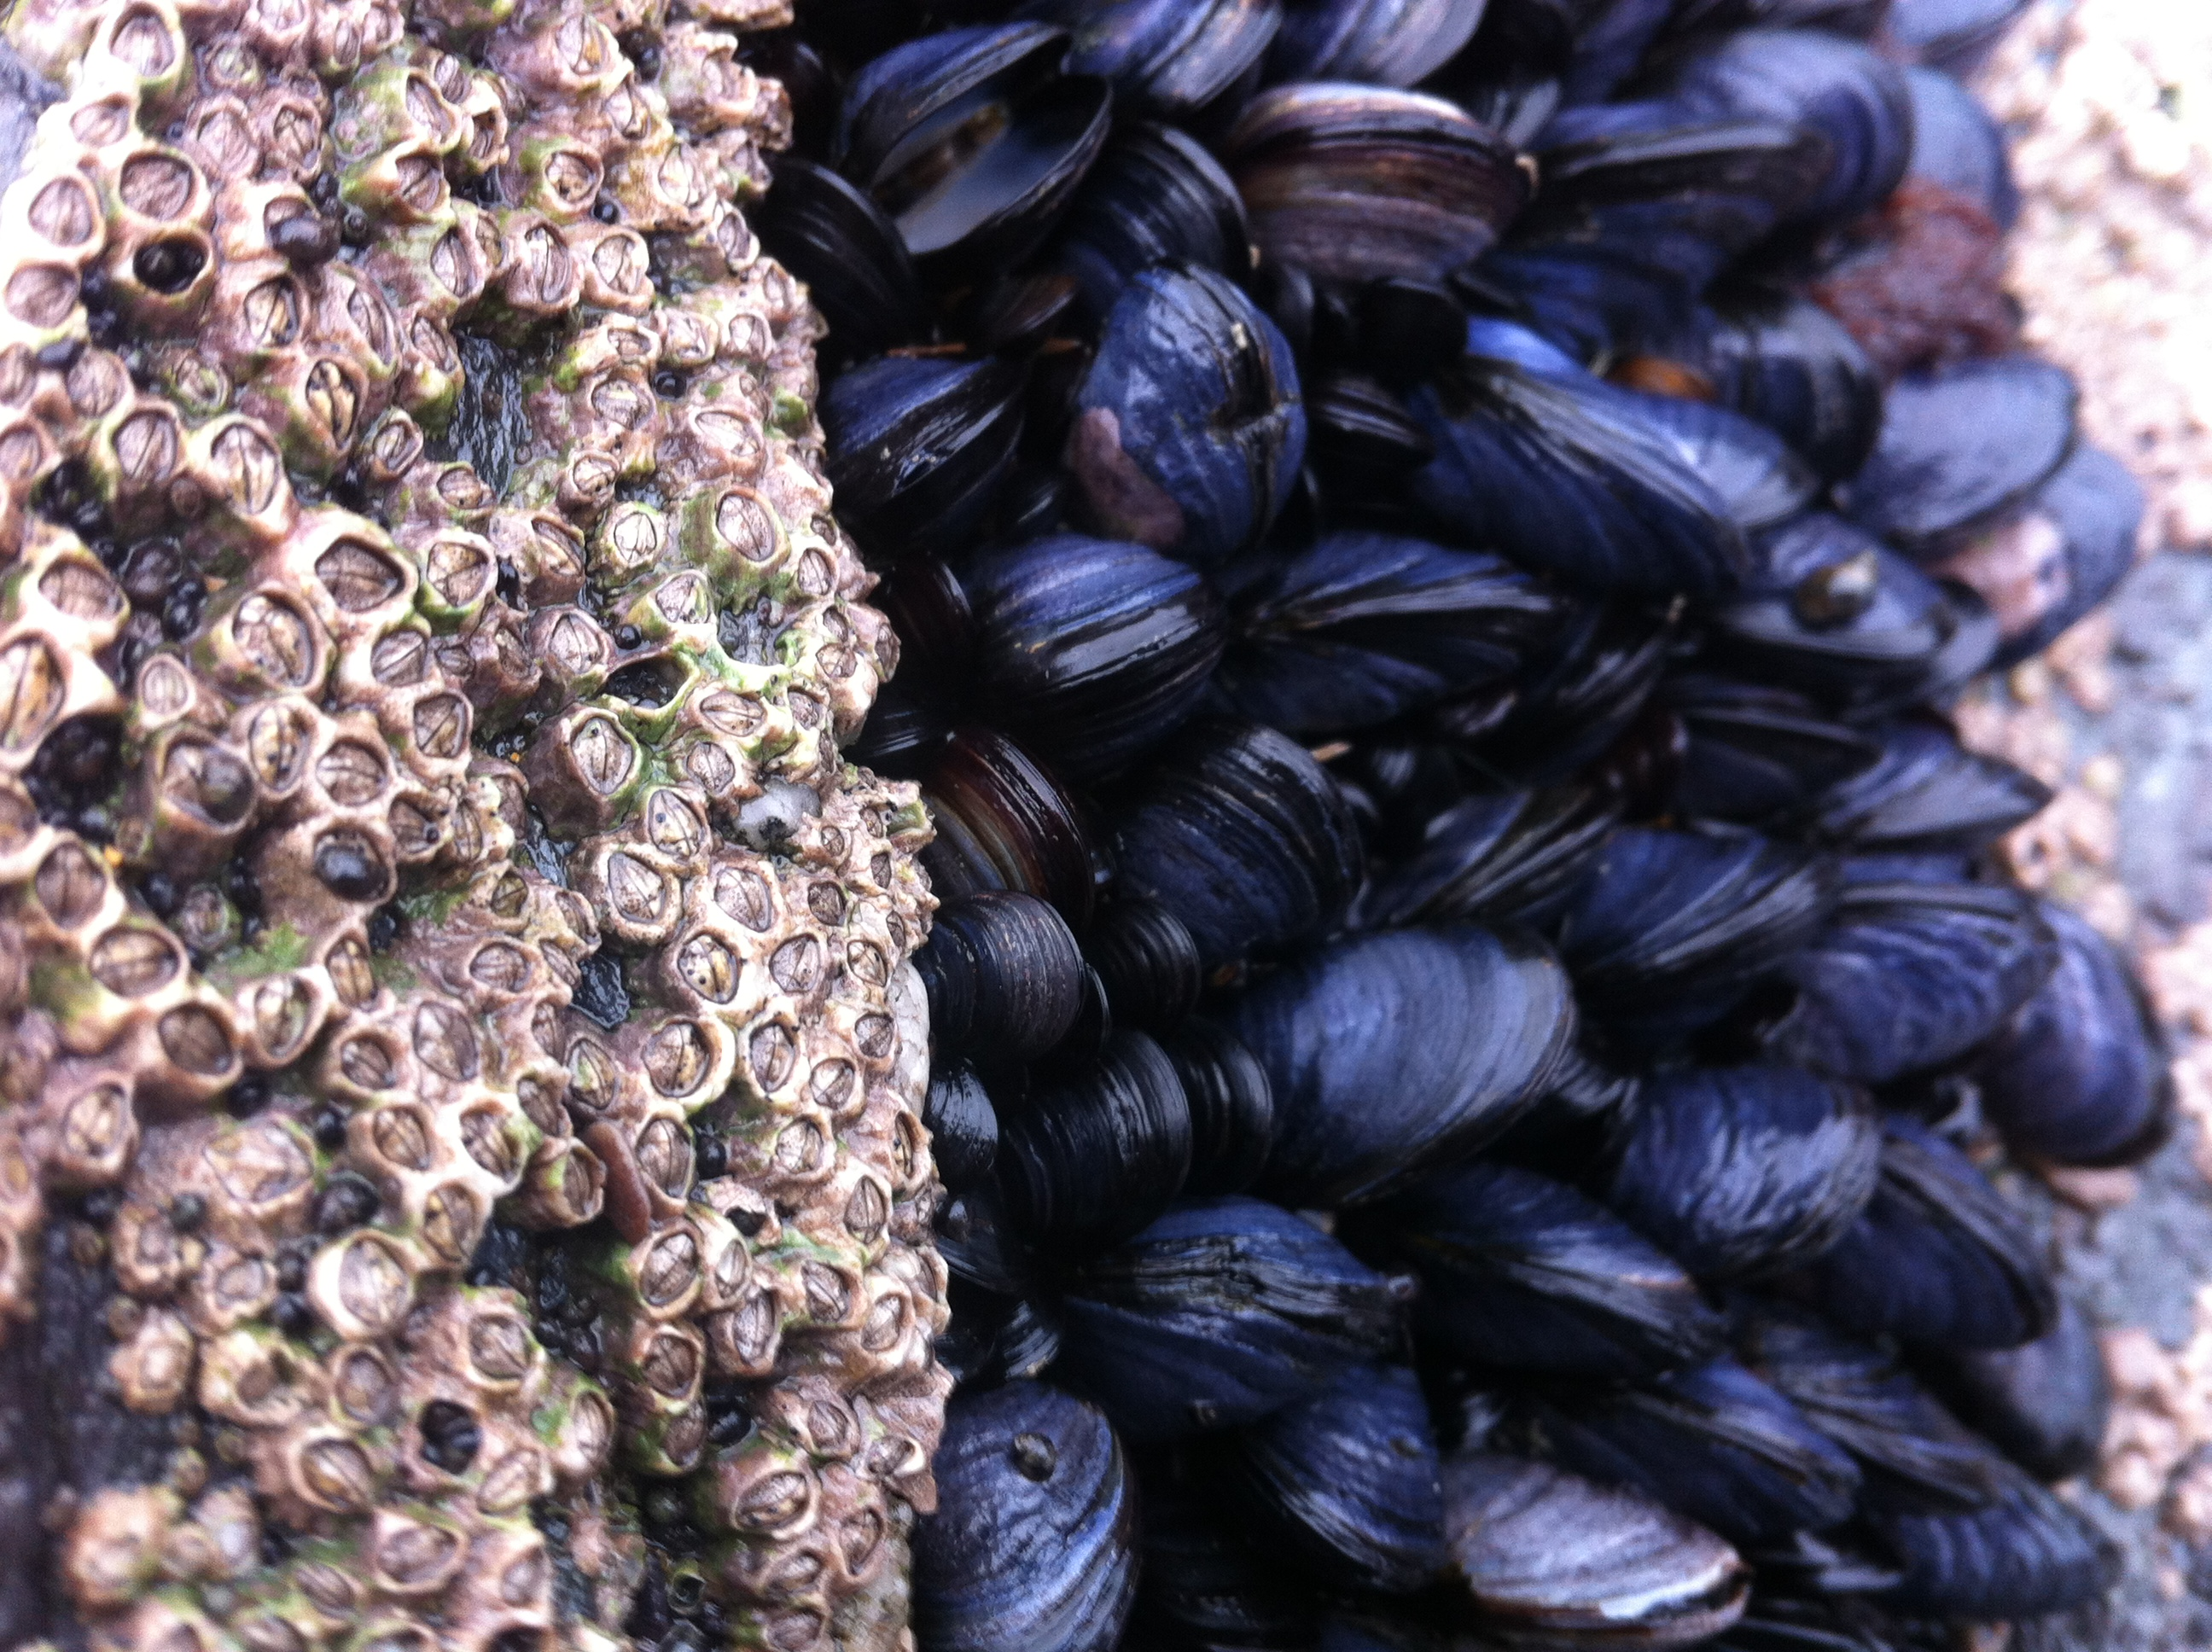 Foraged foods, this is a great time for mussels and wild garlic